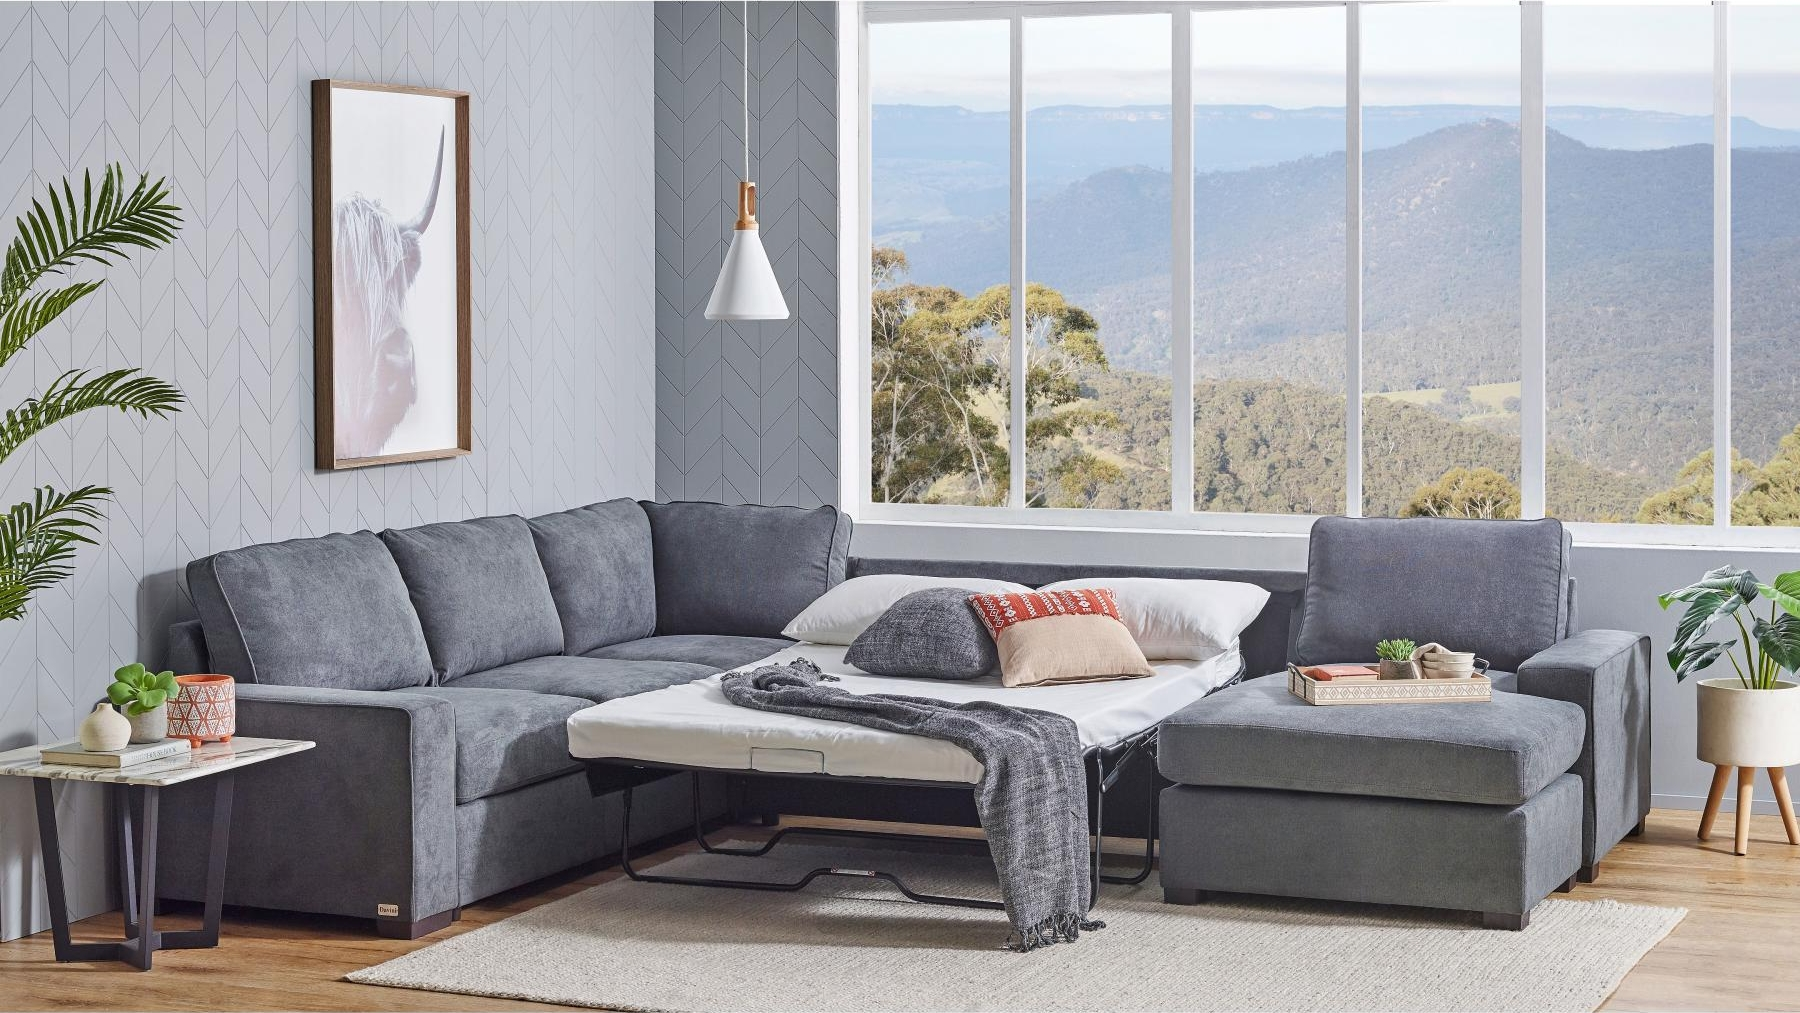 Bronson 4-Seater Modular Lounge Suite with Sofa Bed